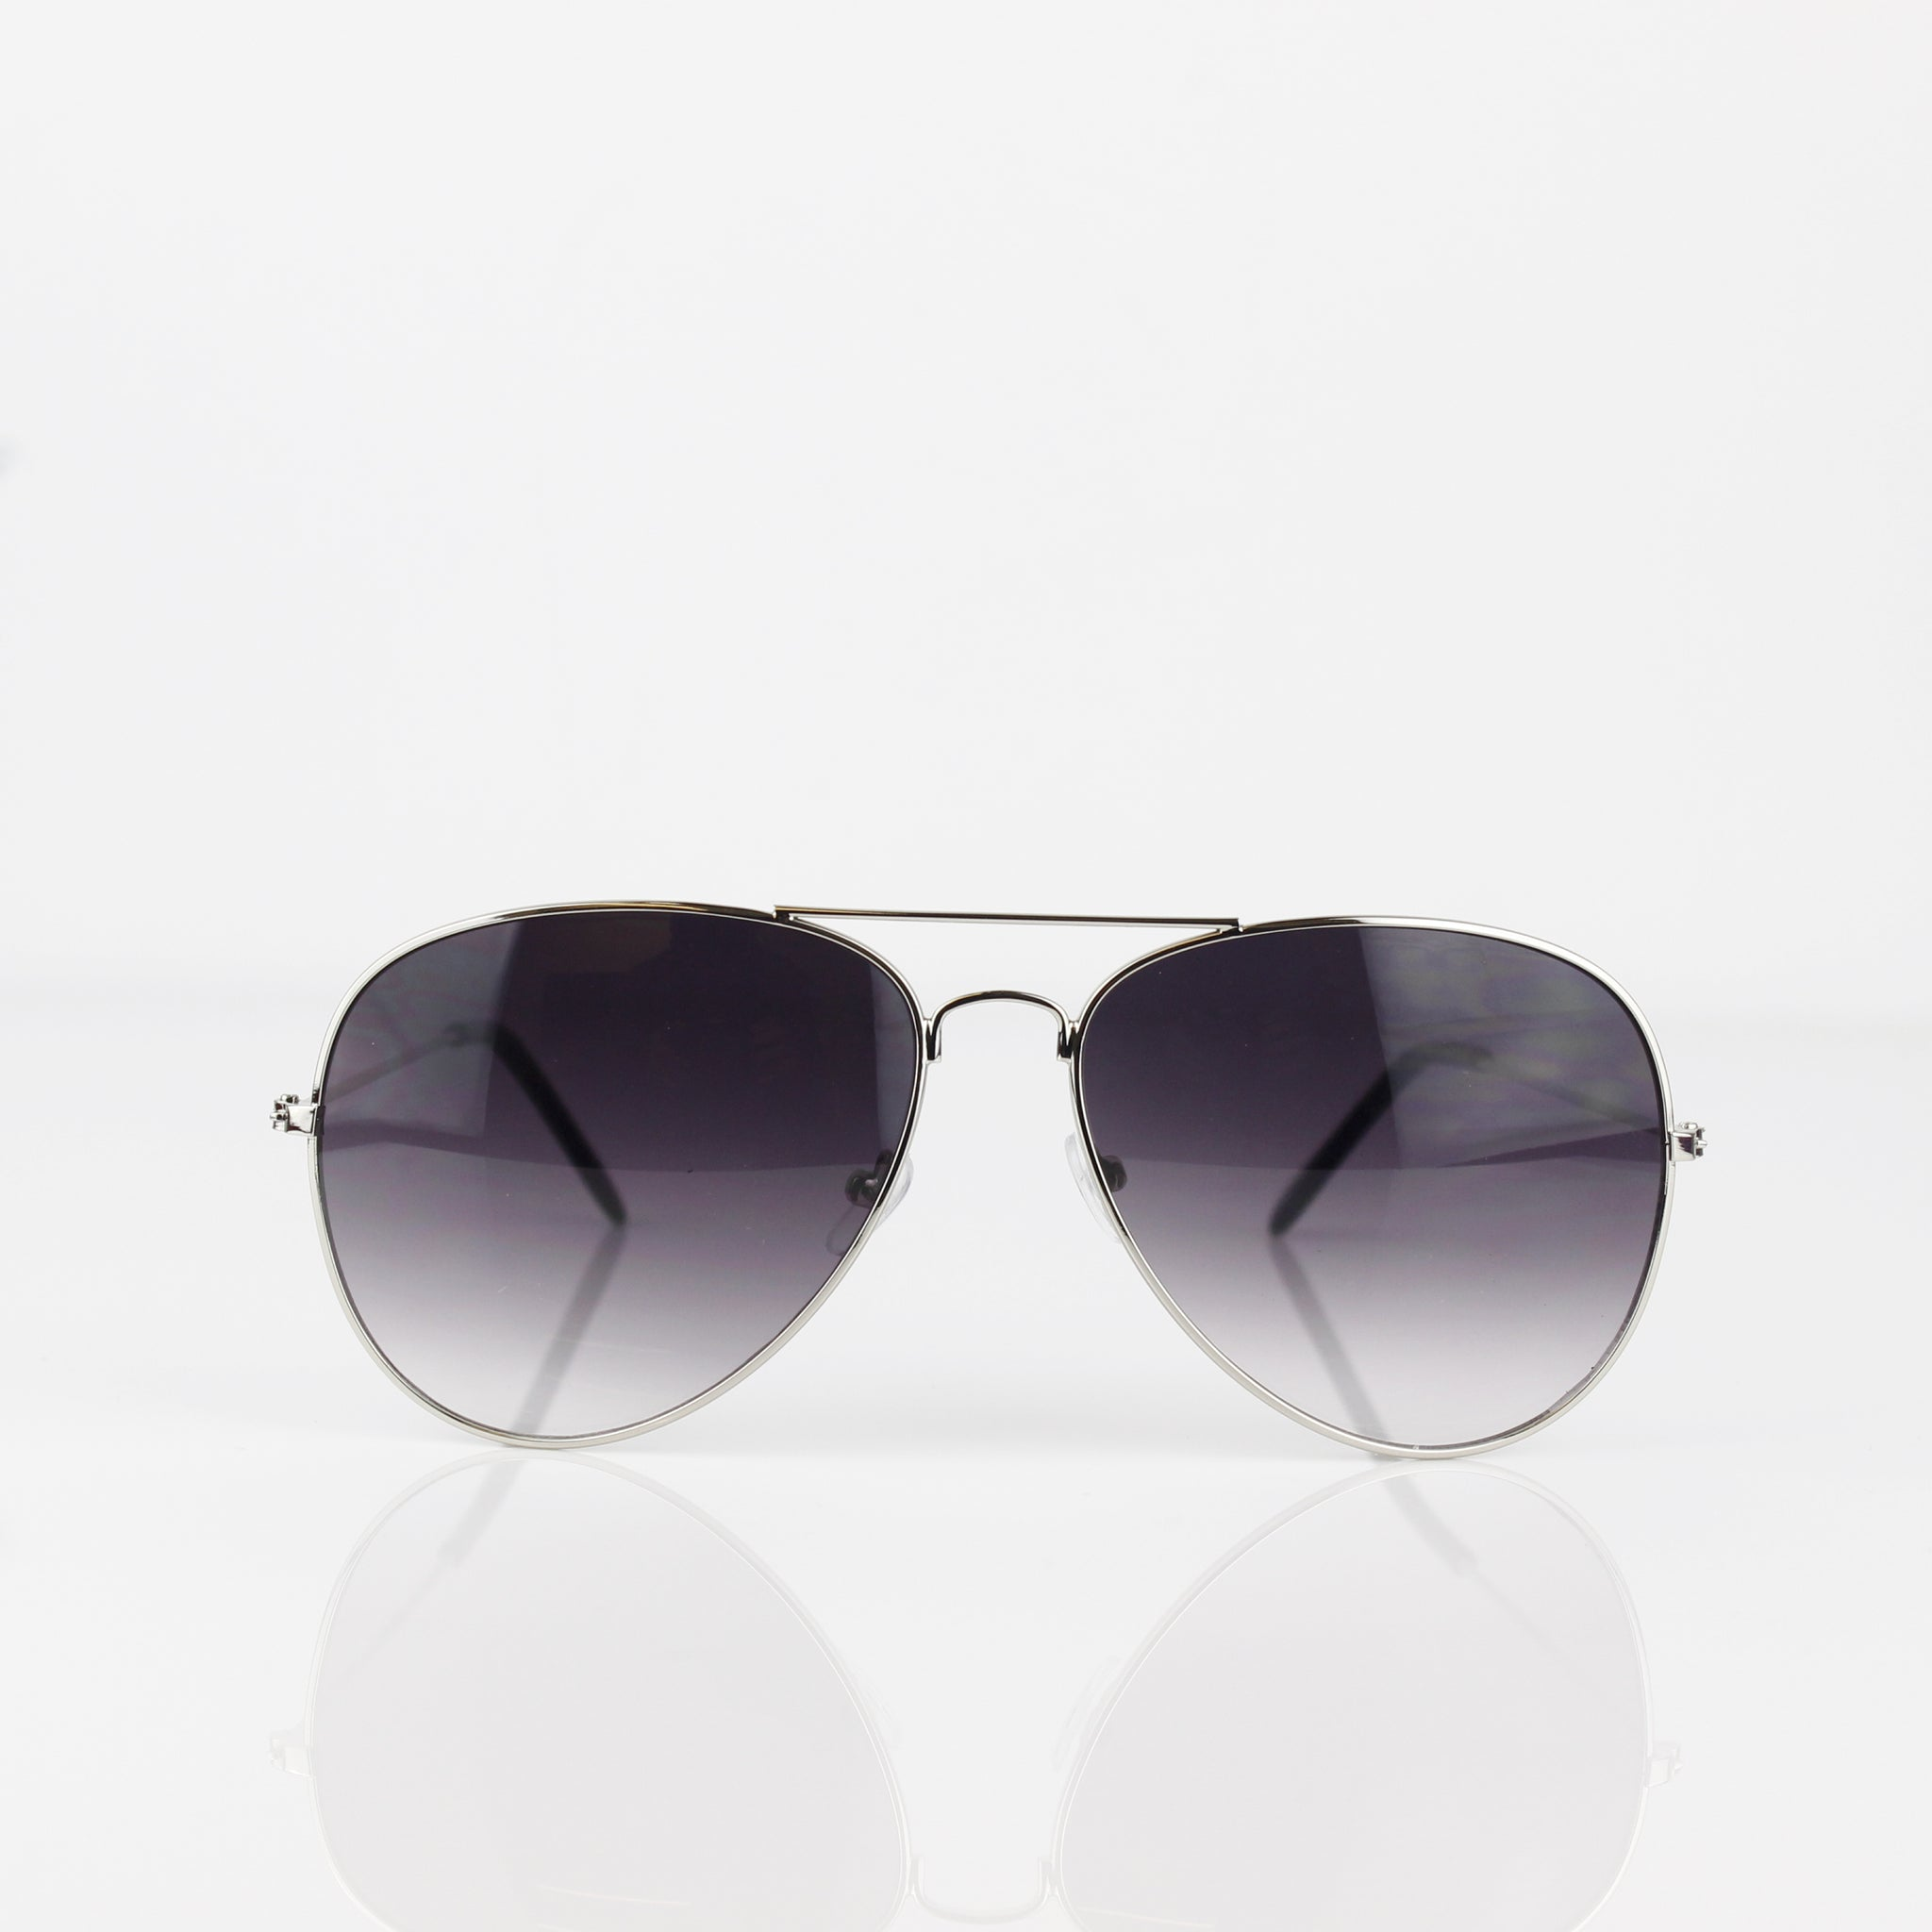 SILVER AVIATOR SUNGLASSES - svnx